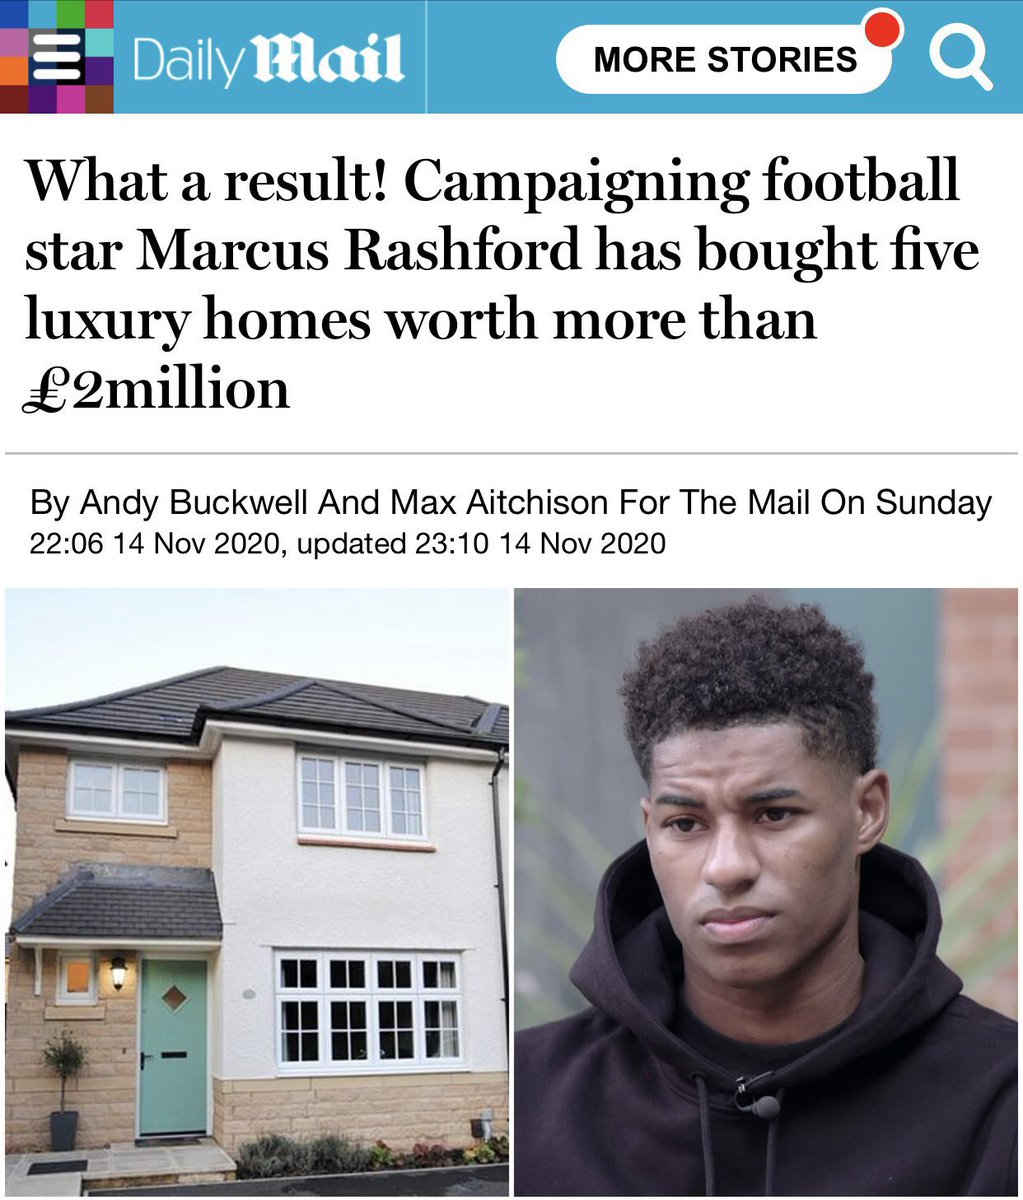 Ok, so let's address this. I'm 23. I came from little. I need to protect not just my future but my family's too. To do that I made a decision at the beg of 2020 to start investing more in property. Please don't run stories like this alongside refs to 'campaigning'.